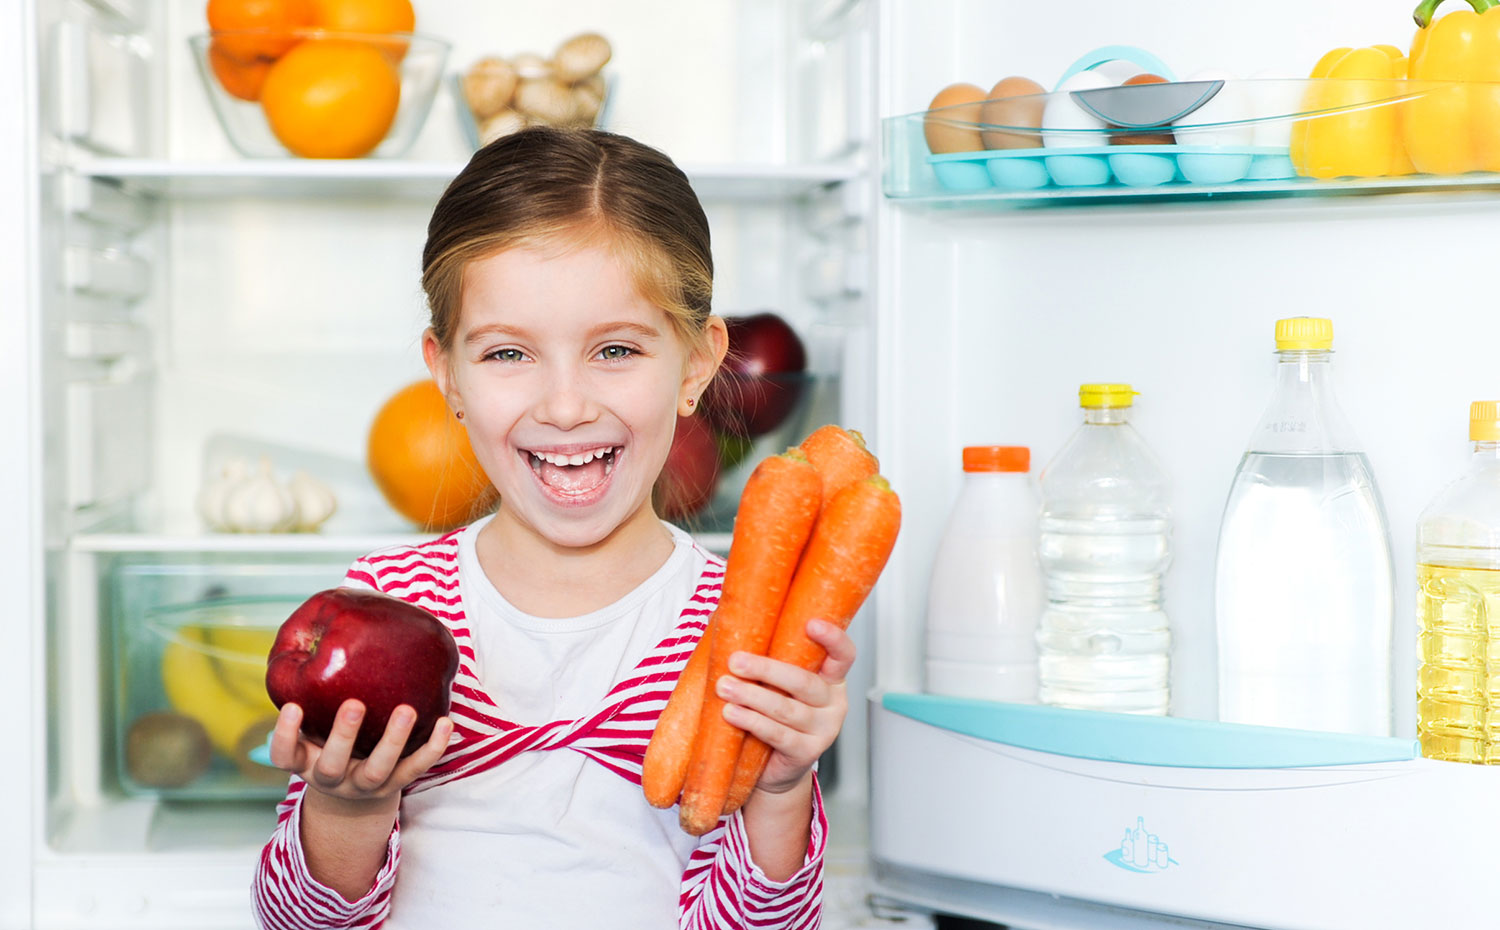 Girl smiling at healthy food